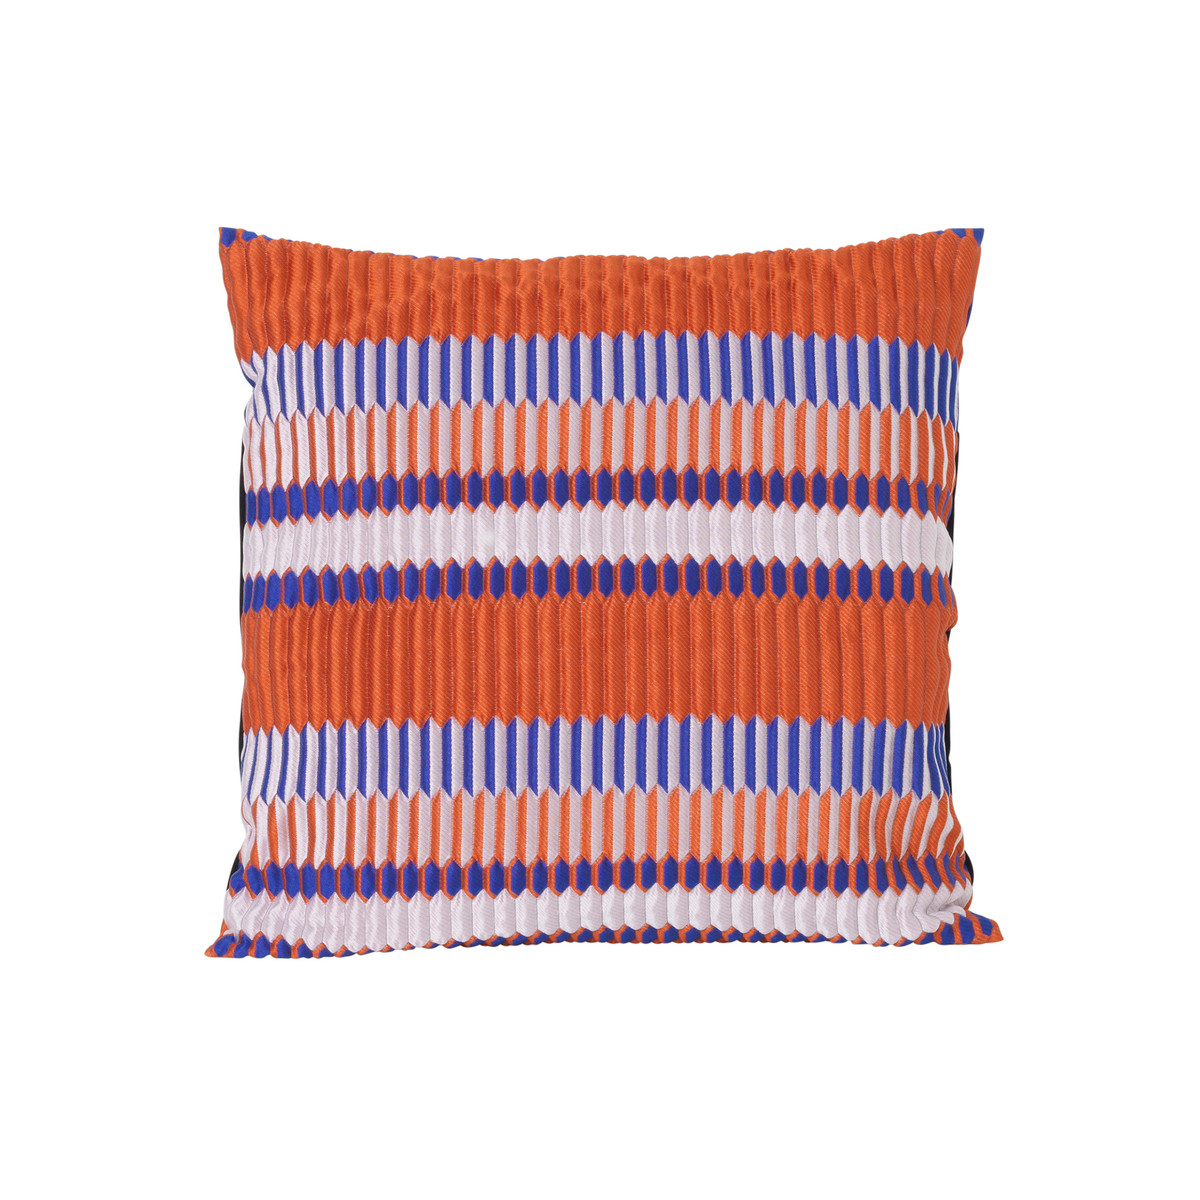 Kopfkissen 40x40 ᐅ Ferm Living Salon Kissen Pleat 40 X 40 Cm Rust Kissenjunkie